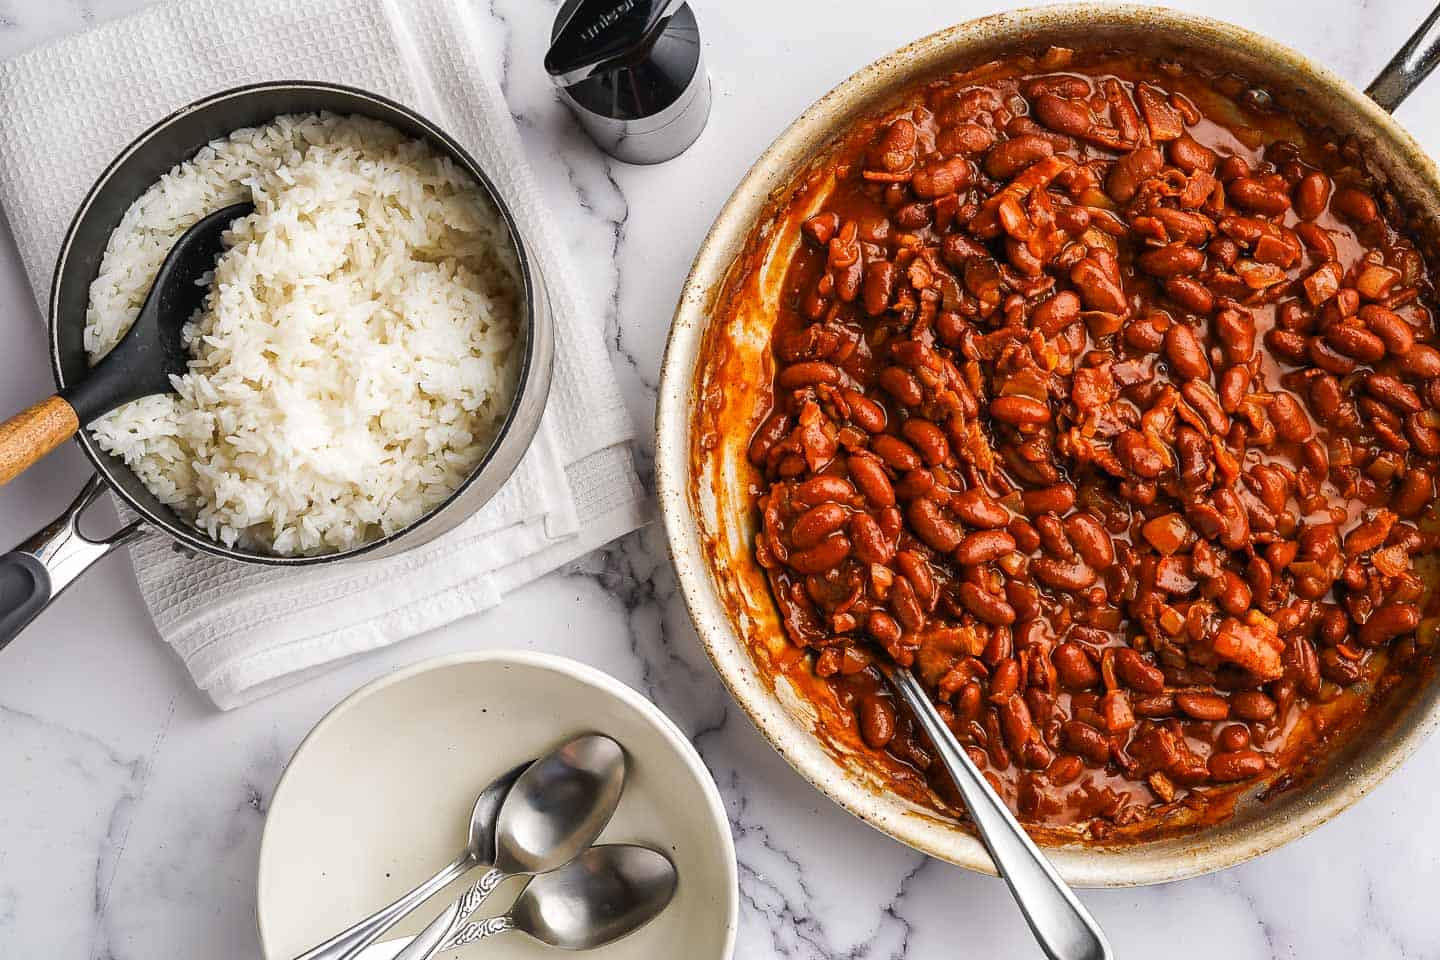 Red beans in skillet with rice and empty bowls on the side